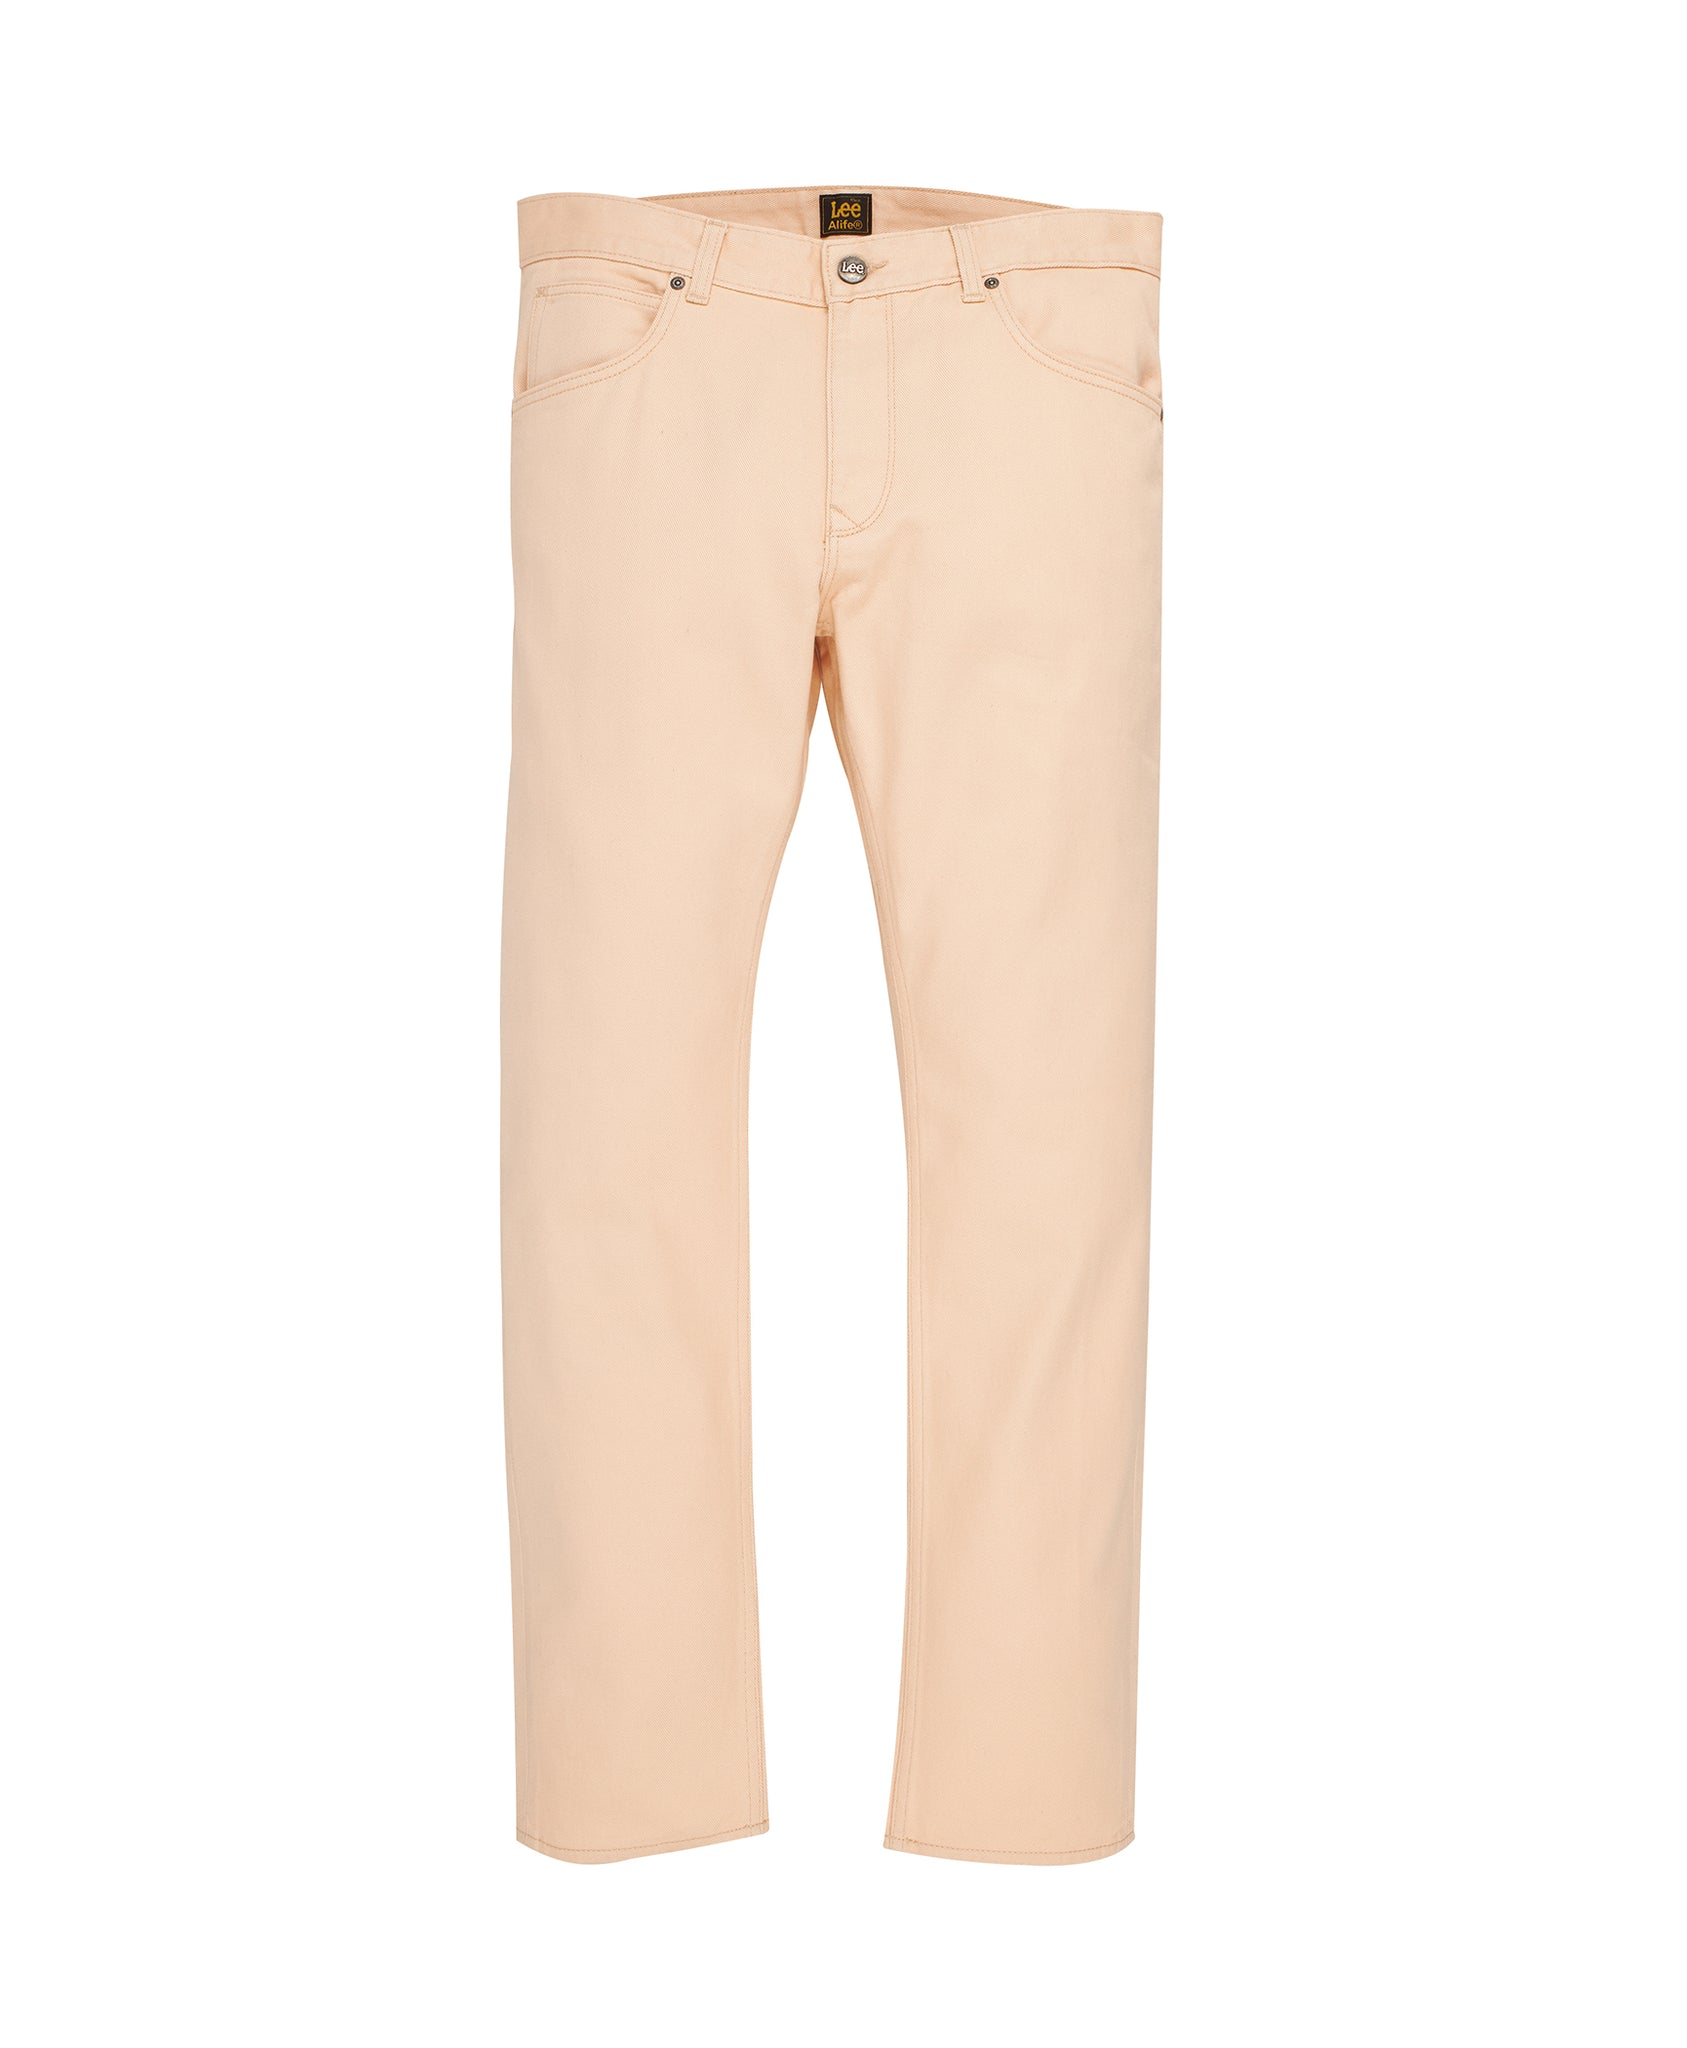 Alife/Lee Colored Cotton Twill Pant in Beige front view